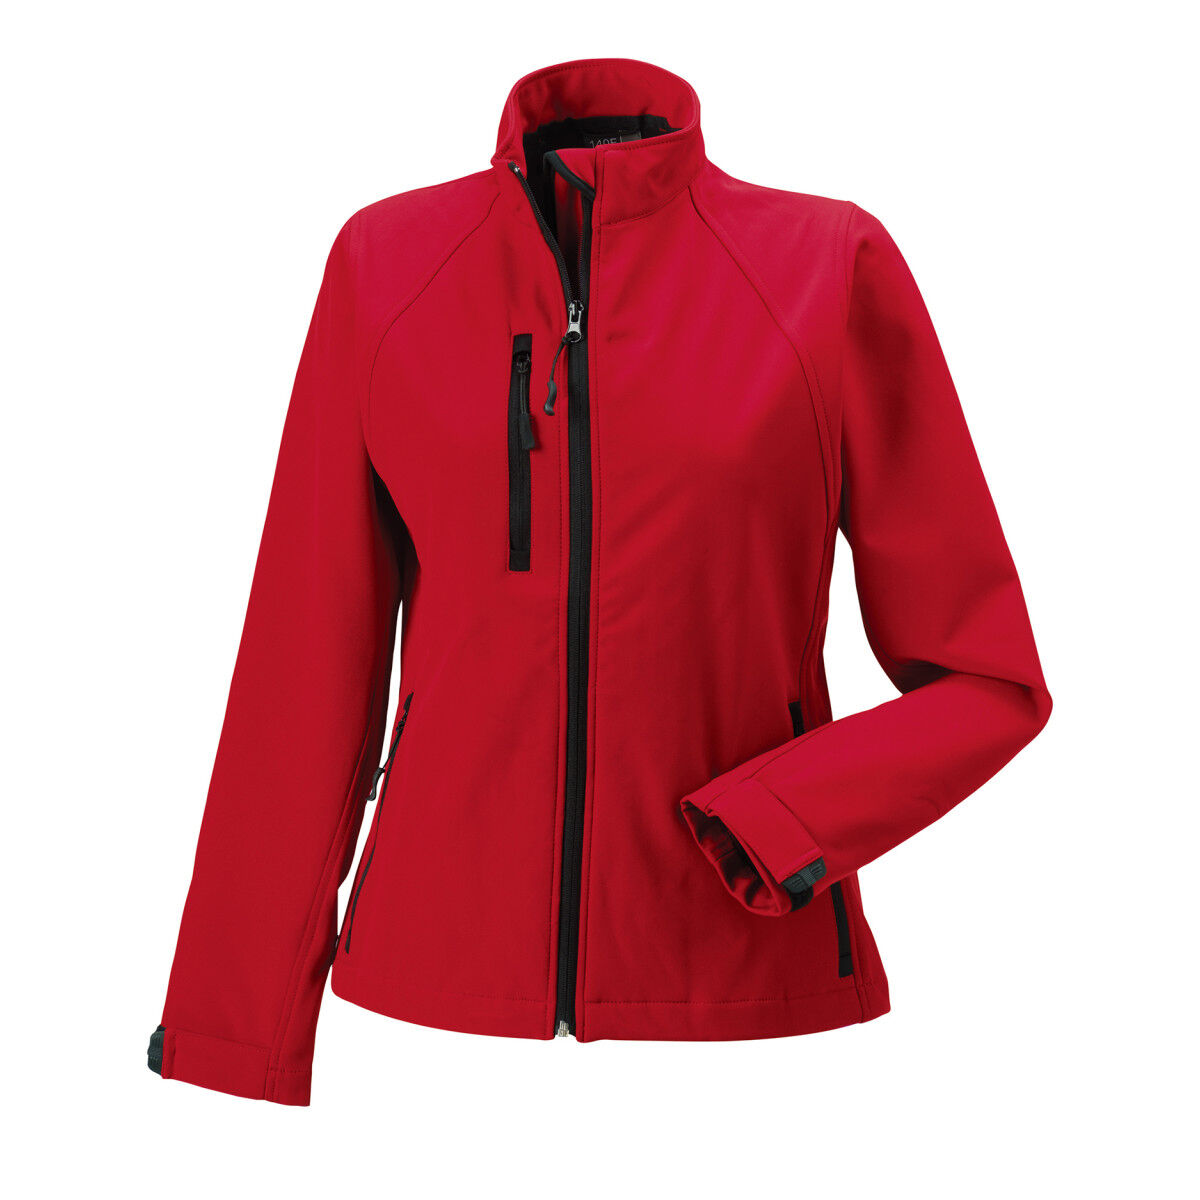 Russell Ladies Soft Shell Jacket - Classic Red